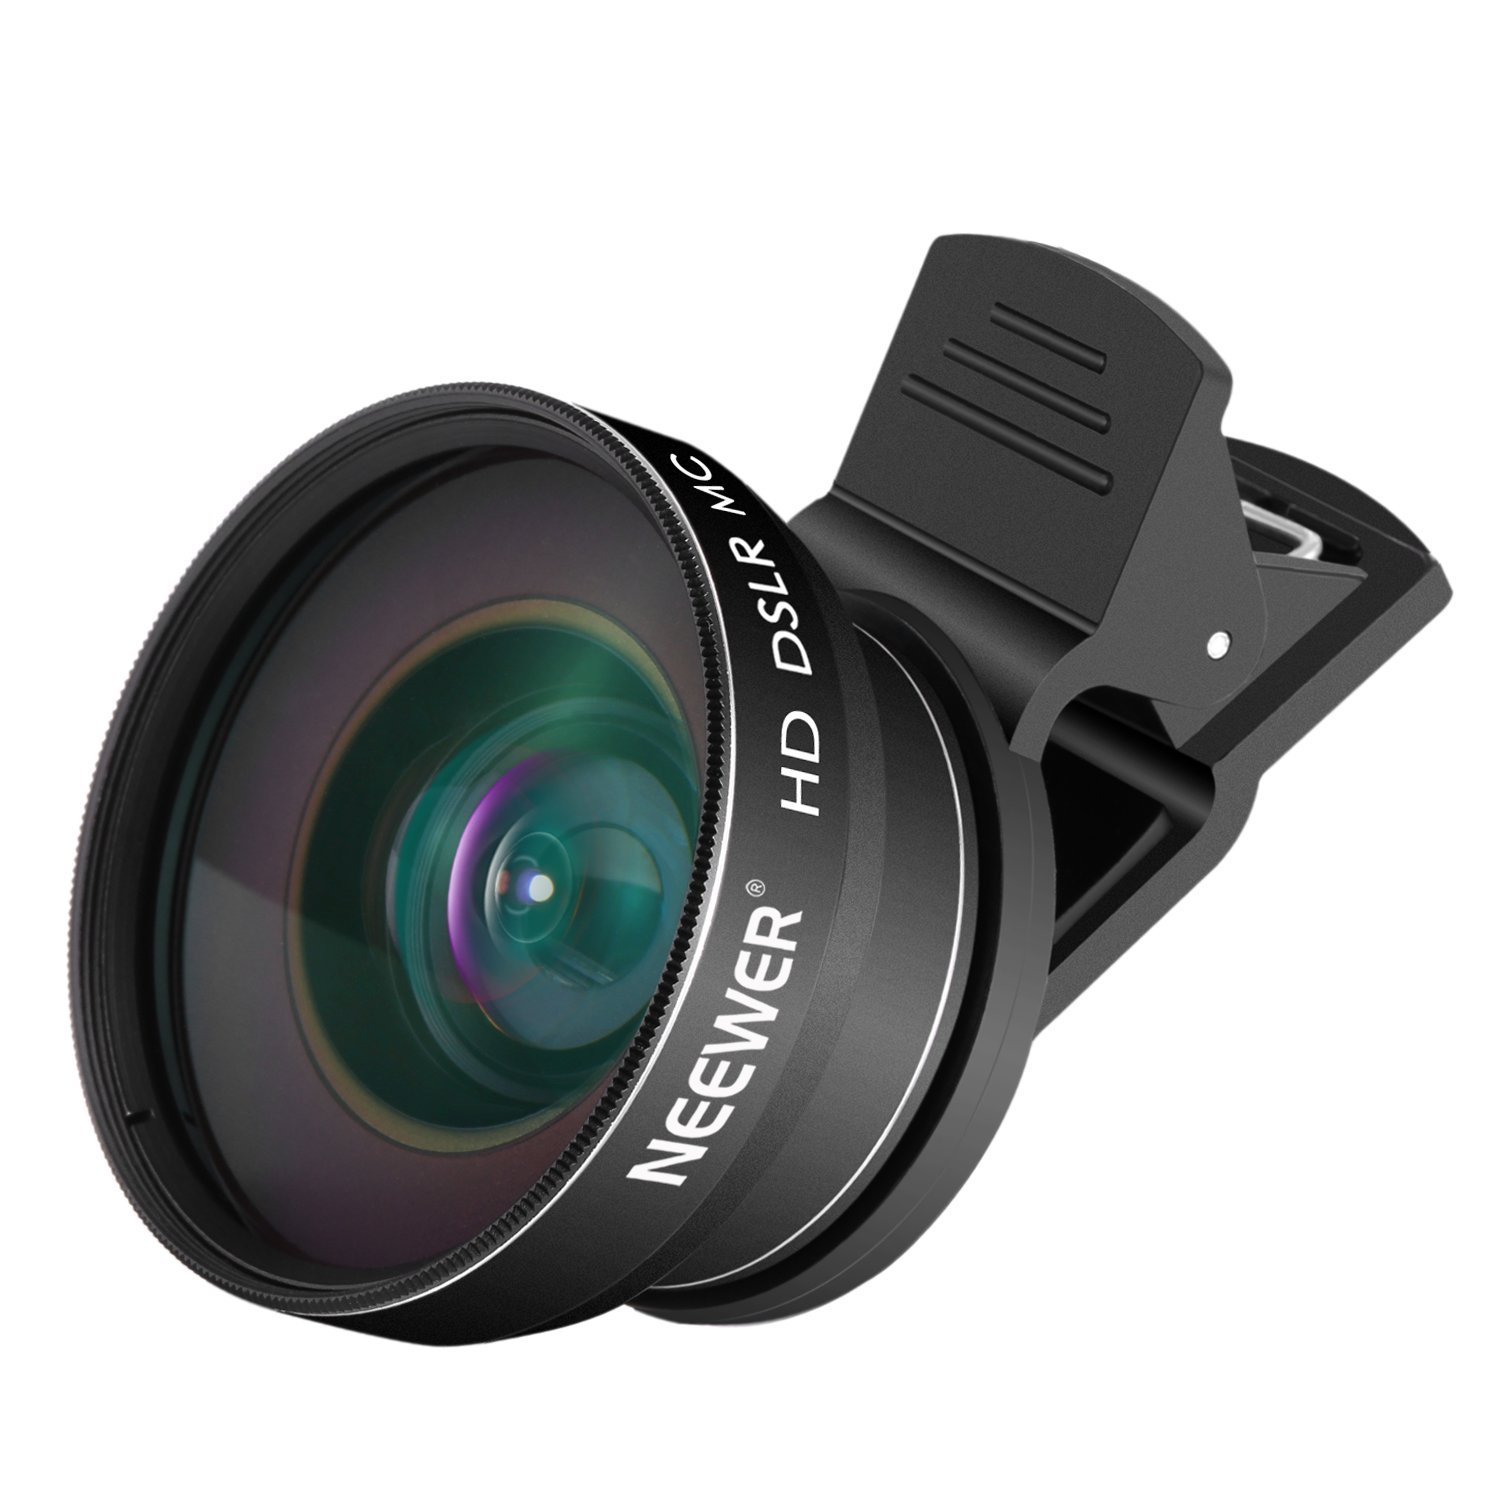 Neewer 2-in-1 Cellphone Lens Kit - 0.43x Wide Angle and 10x Macro Clip-on Cellphone Camera Lens Kit for Android Smartphones and iPhone such as iPhone 7 plus,6s,6s Plus,6 Plus,Samsung Galaxy S6,S6 Edge